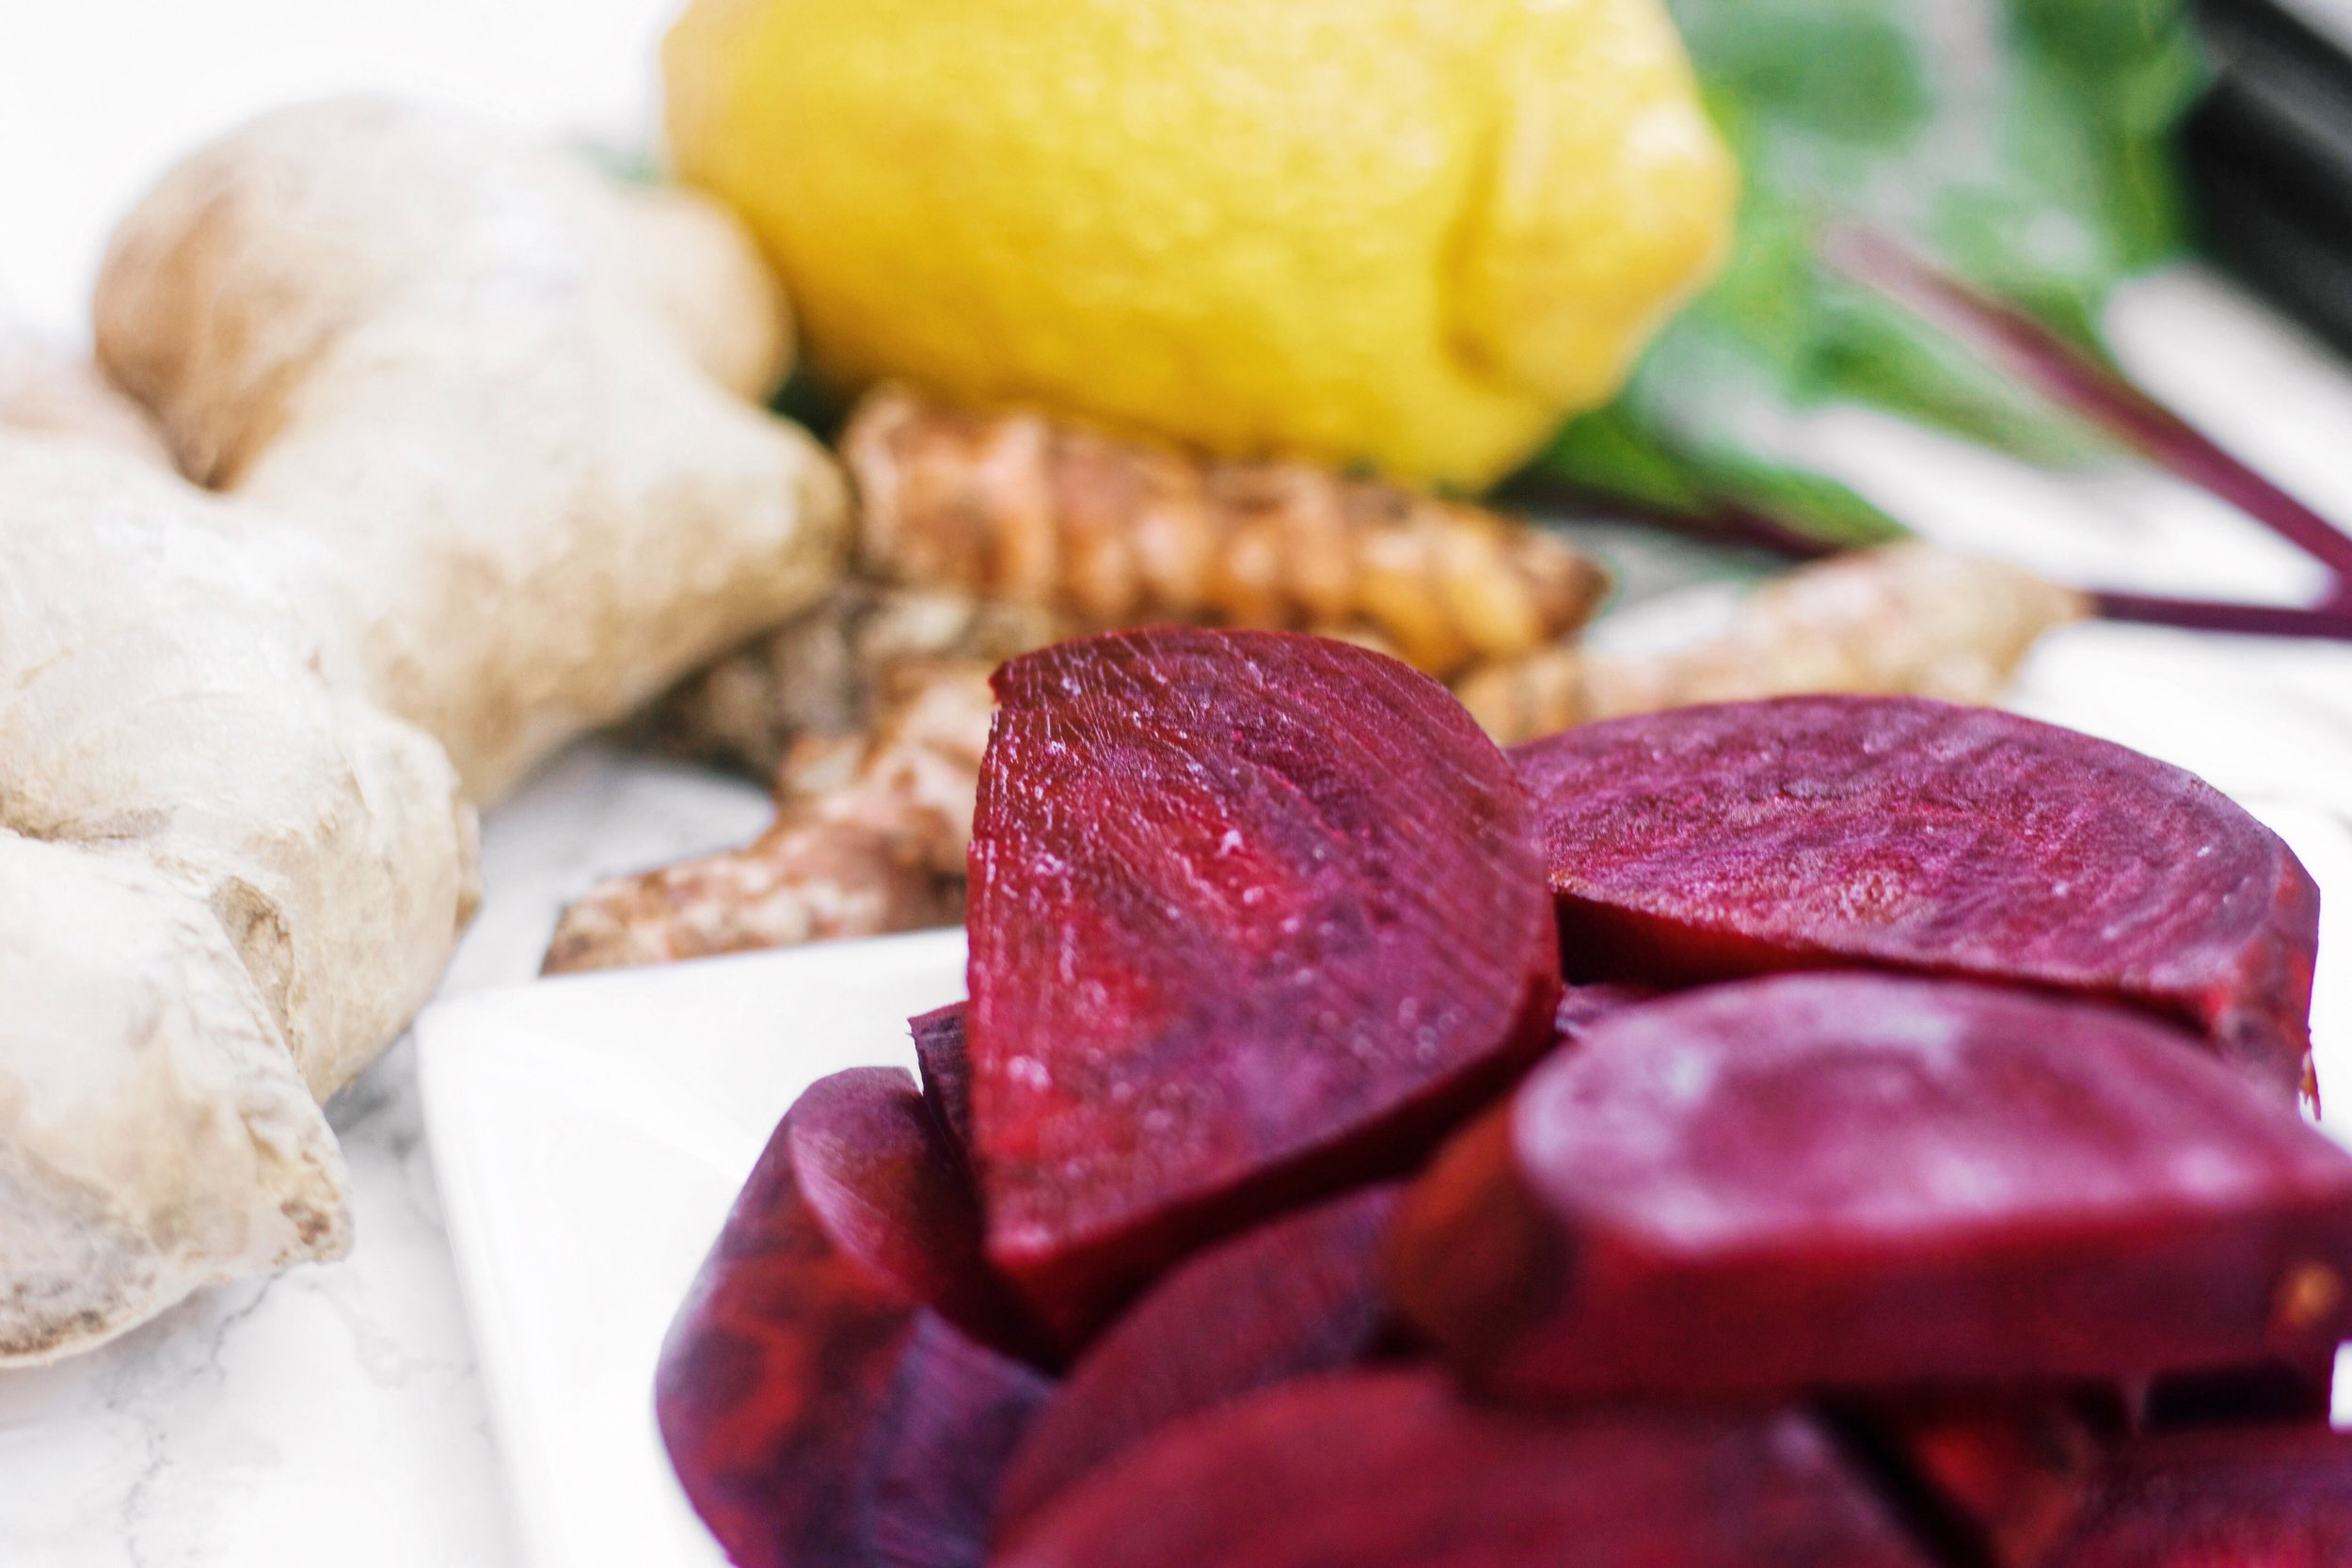 How to Make a Superfood Beet Juice Shot Without a Juicer